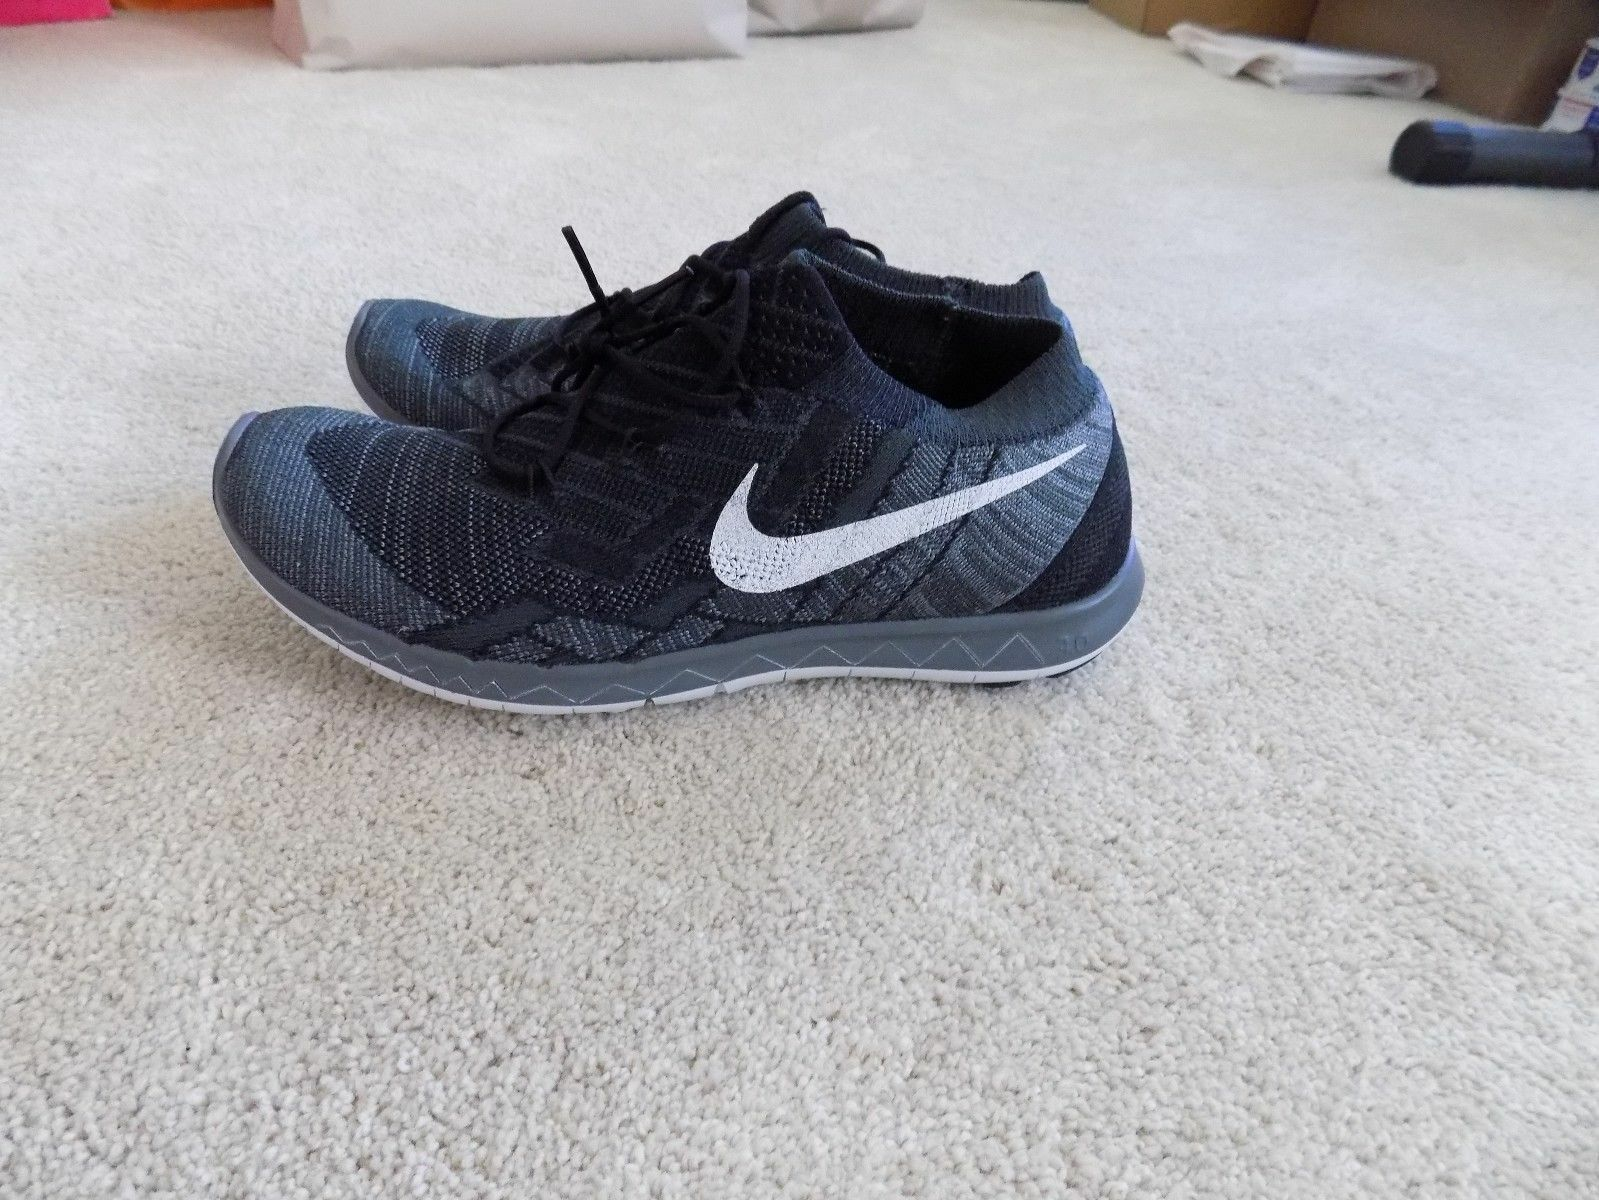 81c72fb0c47a6 NEW WOMENS 6 6.5 8 NIKE FREE FREE FREE 3.0 FLYKNIT RUNNING SHOES BLACK GREY  WHITE 718420 4a7fd1